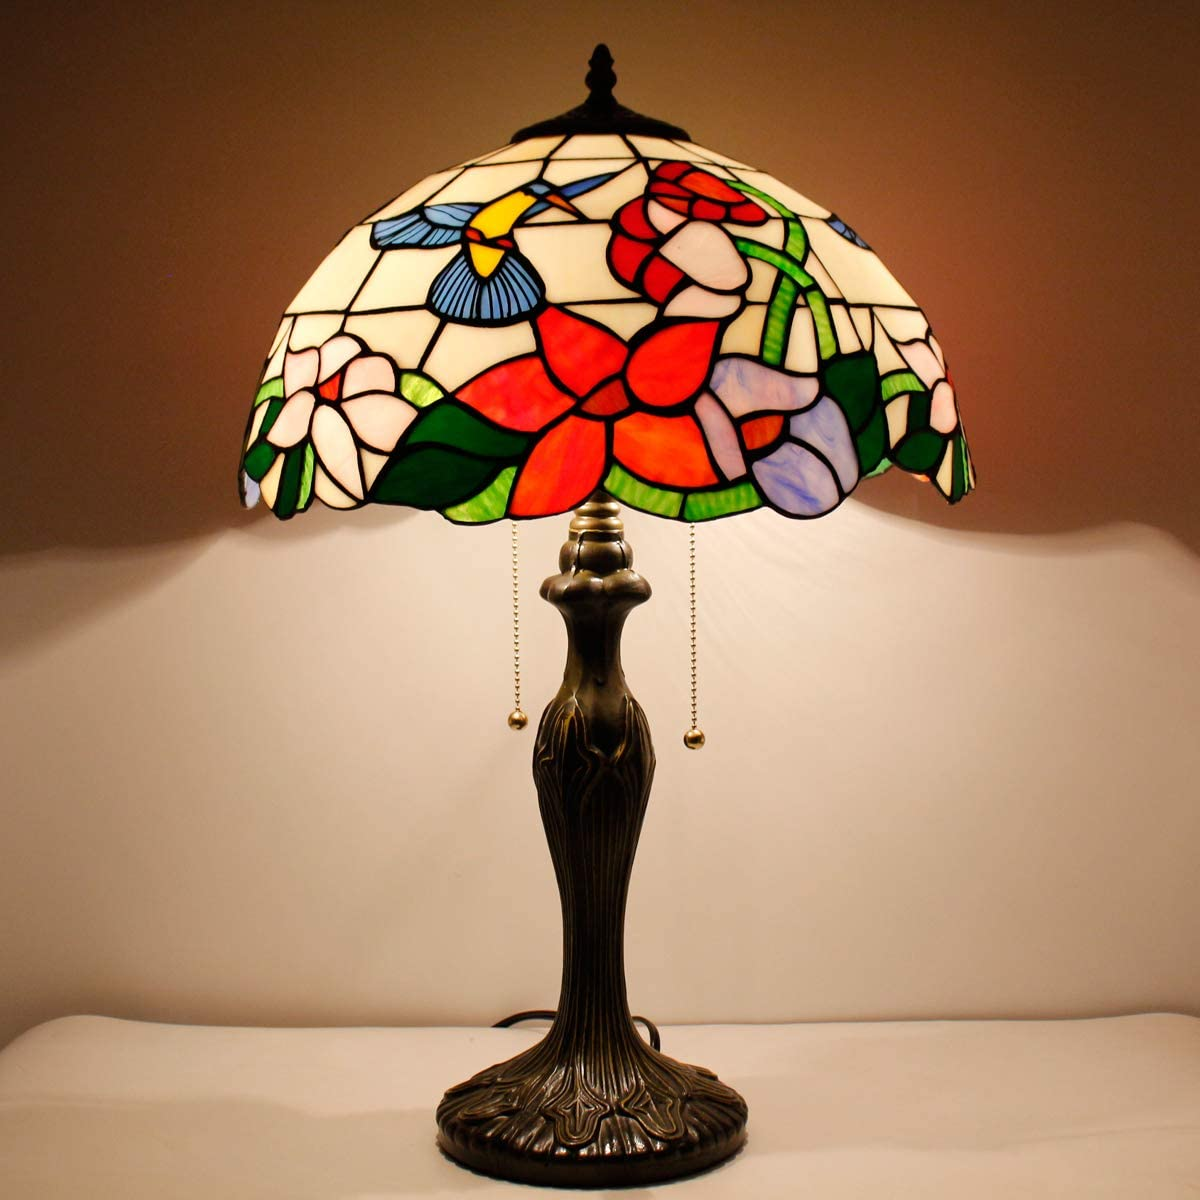 Tiffany Style Table Desk Beside Lamp 24 Inch Tall Hummingbird Design Stained Glass Lamps Shade 2 Light Antique Zinc Base for Living Room Bedroom W16 inch S101 WERFACTORY